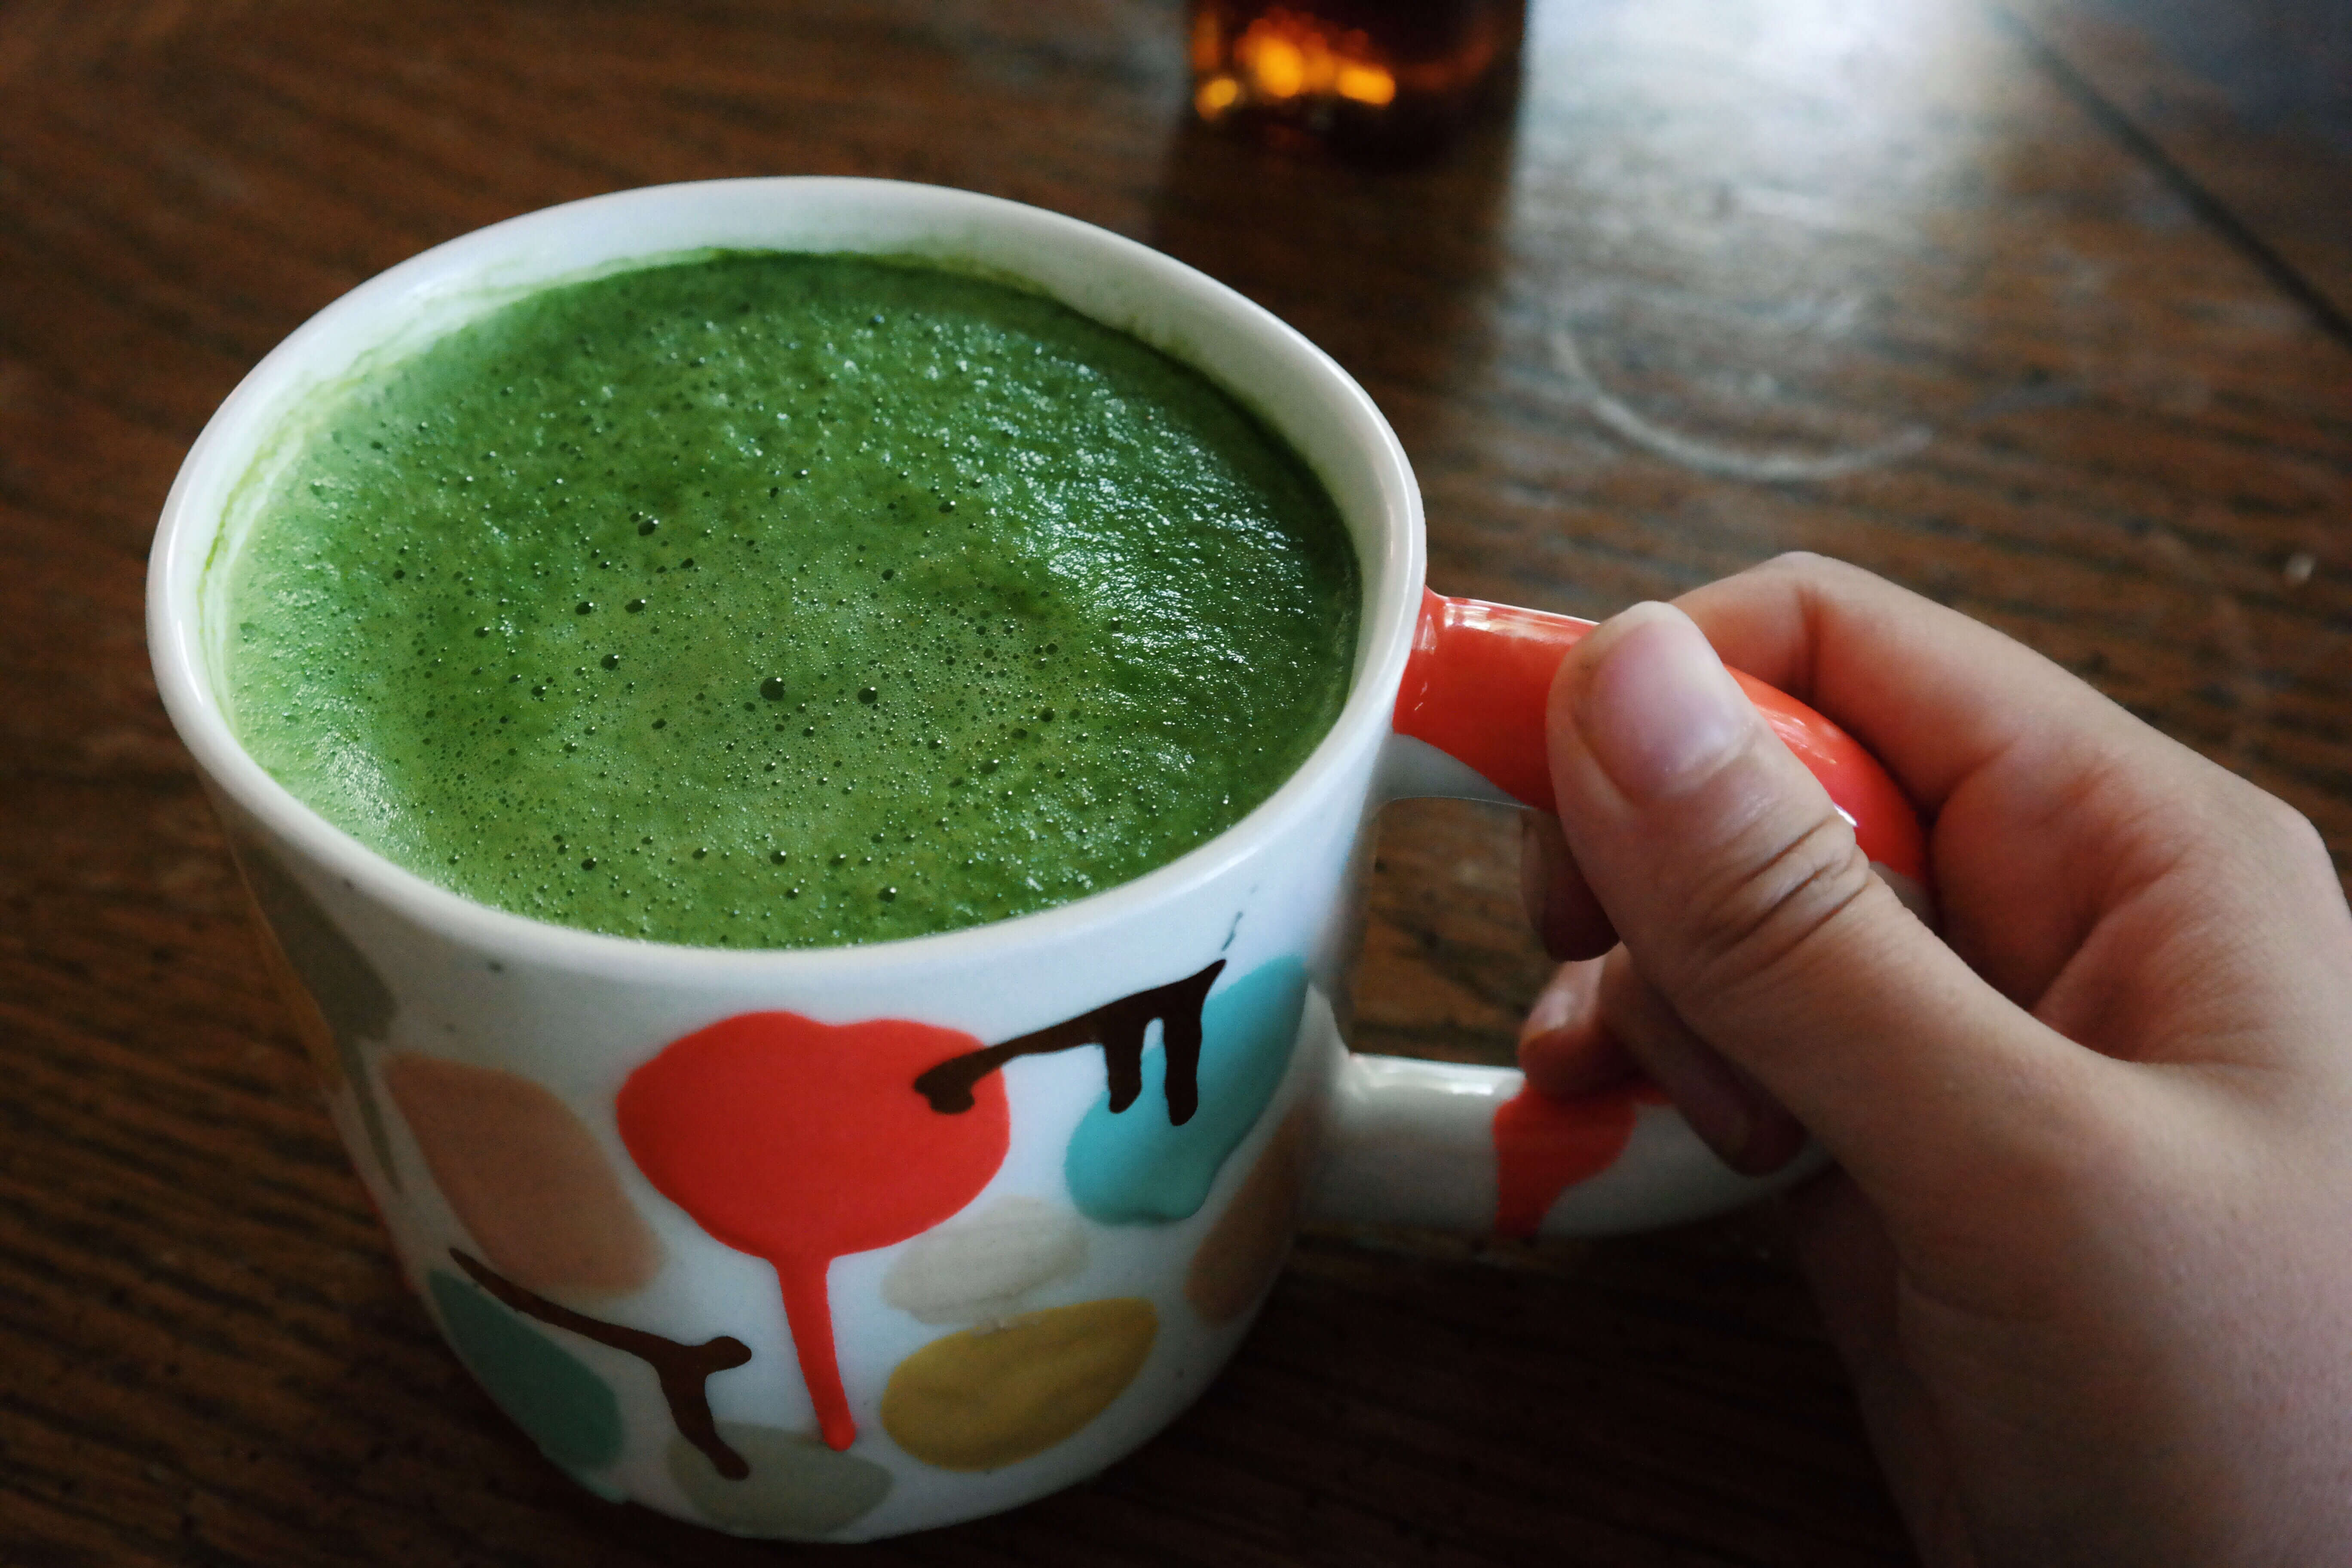 How to Make a Matcha Latte in 5 Minutes